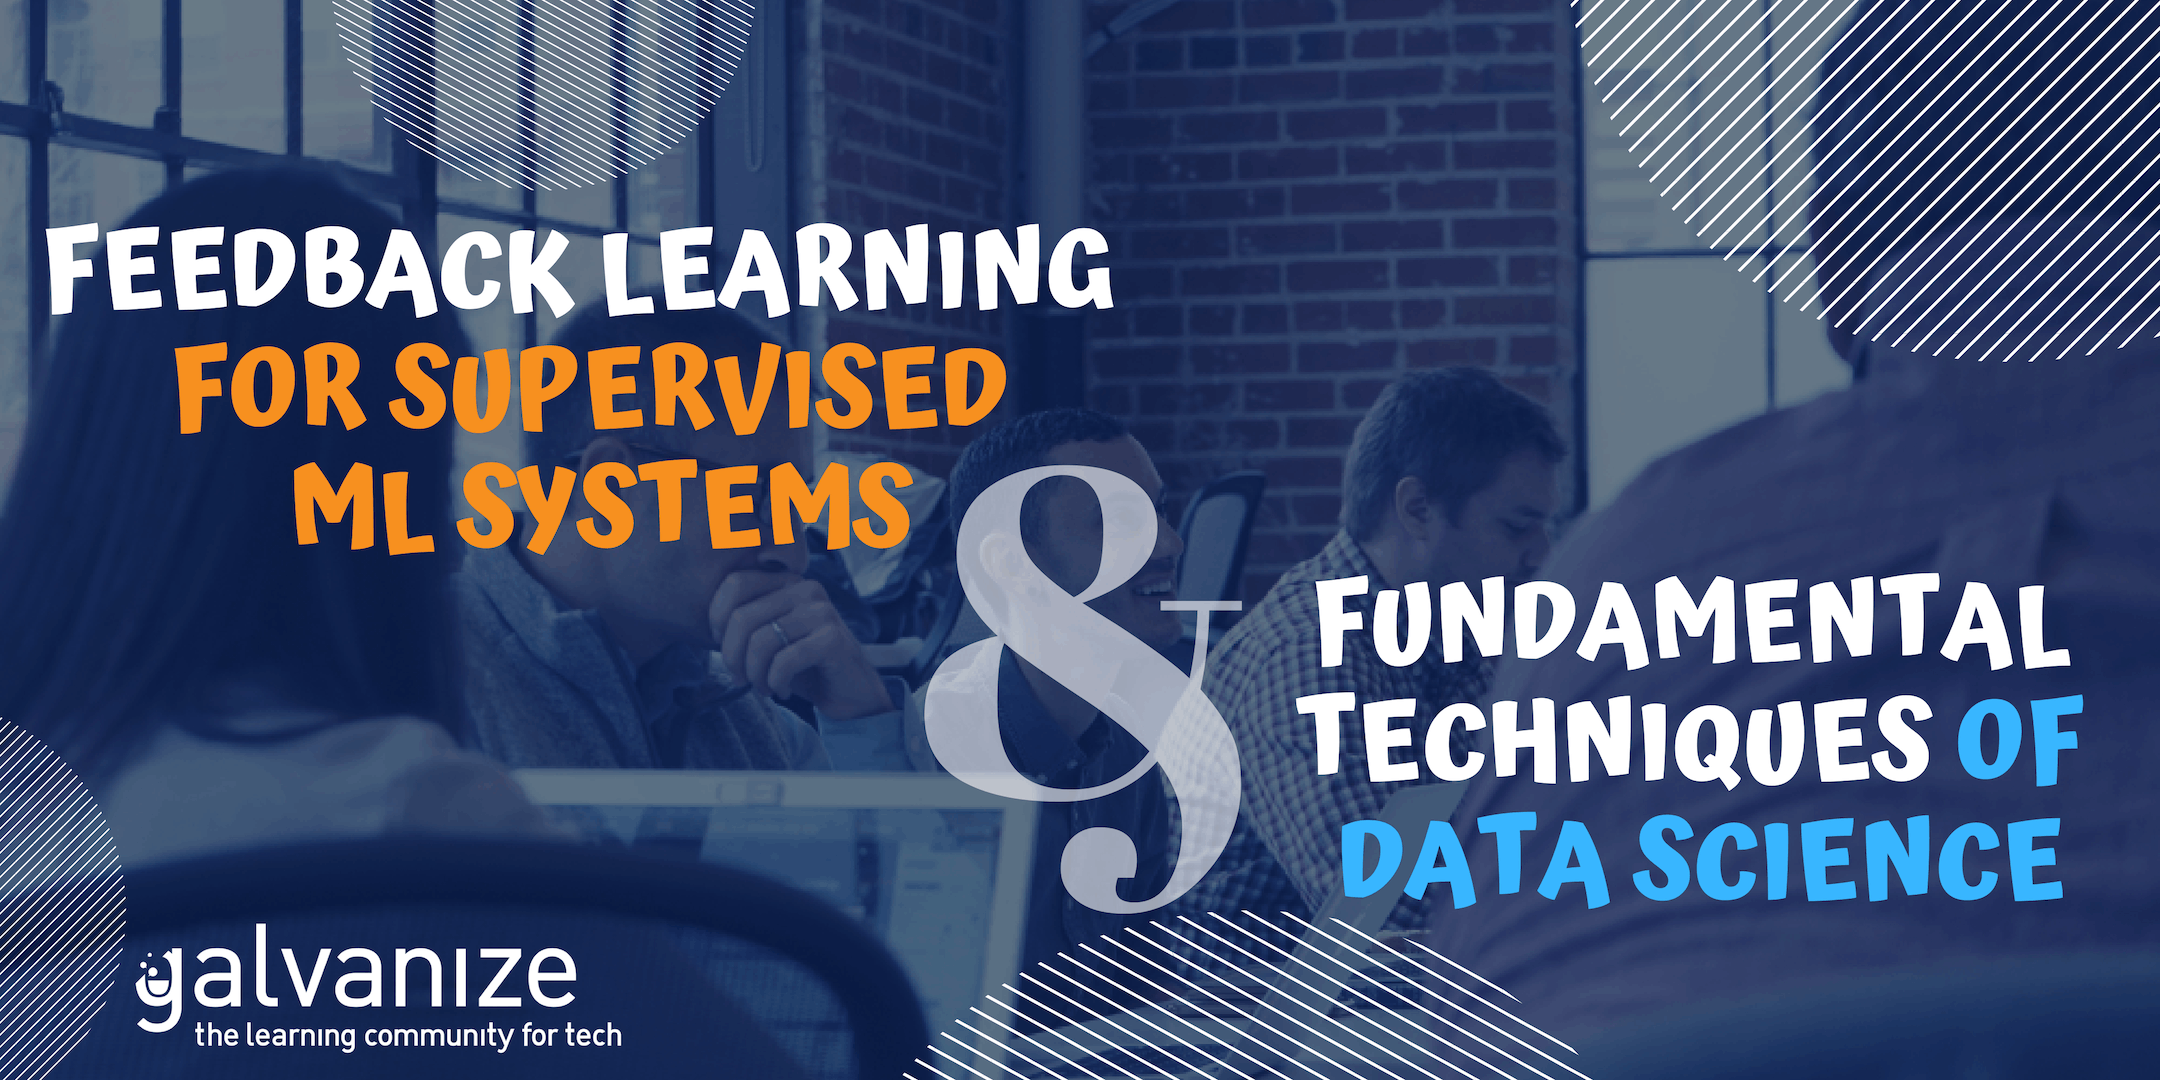 Fundamental Techniques of Data Science & Feedback Learning for Supervised Systems